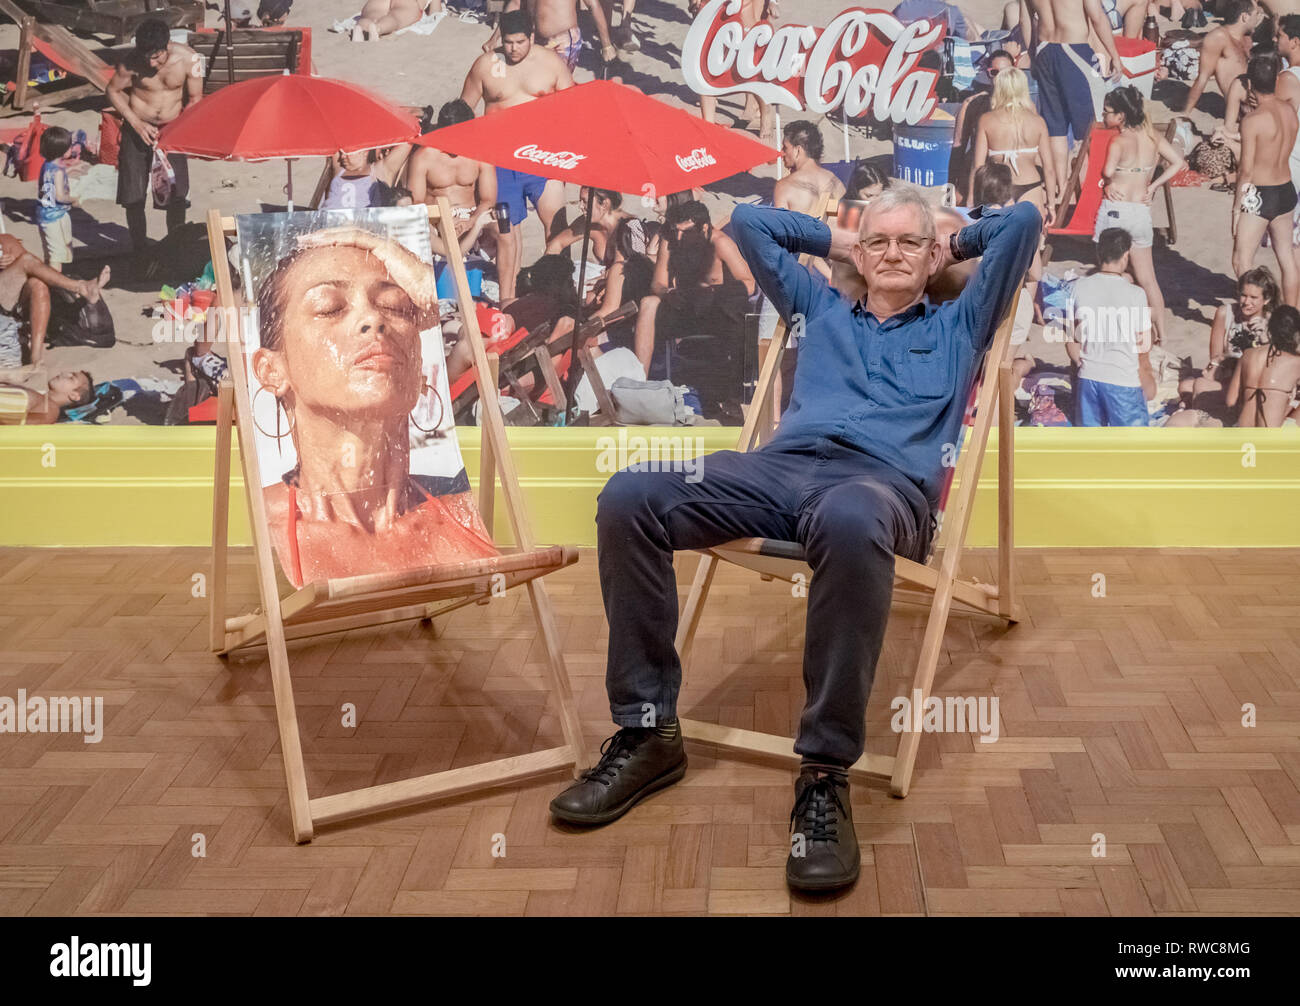 London, UK. 6th March, 2019. Martin Parr 'Only Human' exhibition at the National Portrait Gallery which brings together some of Parr's best known photographs with new work never exhibited before, to focus on one of his most engaging subjects – people. Guy Corbishley/Alamy Live News - Stock Image